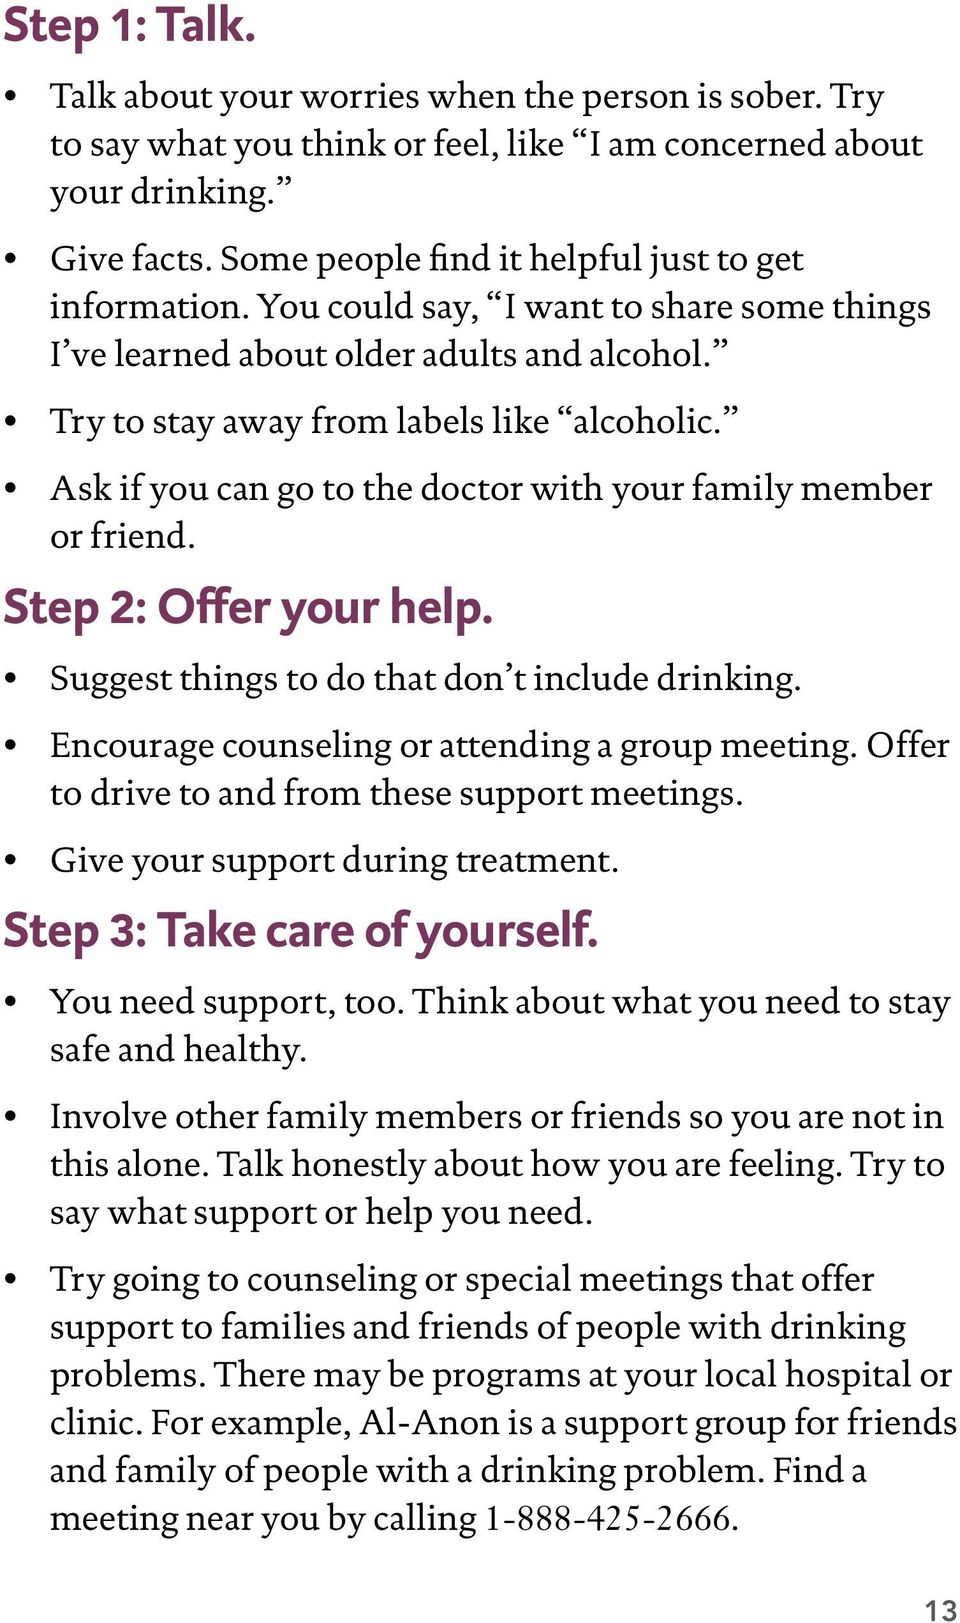 Step 3: Take care of yourself. safe and healthy. this alone. Talk honestly about how you are feeling. Try to say what support or help you need.